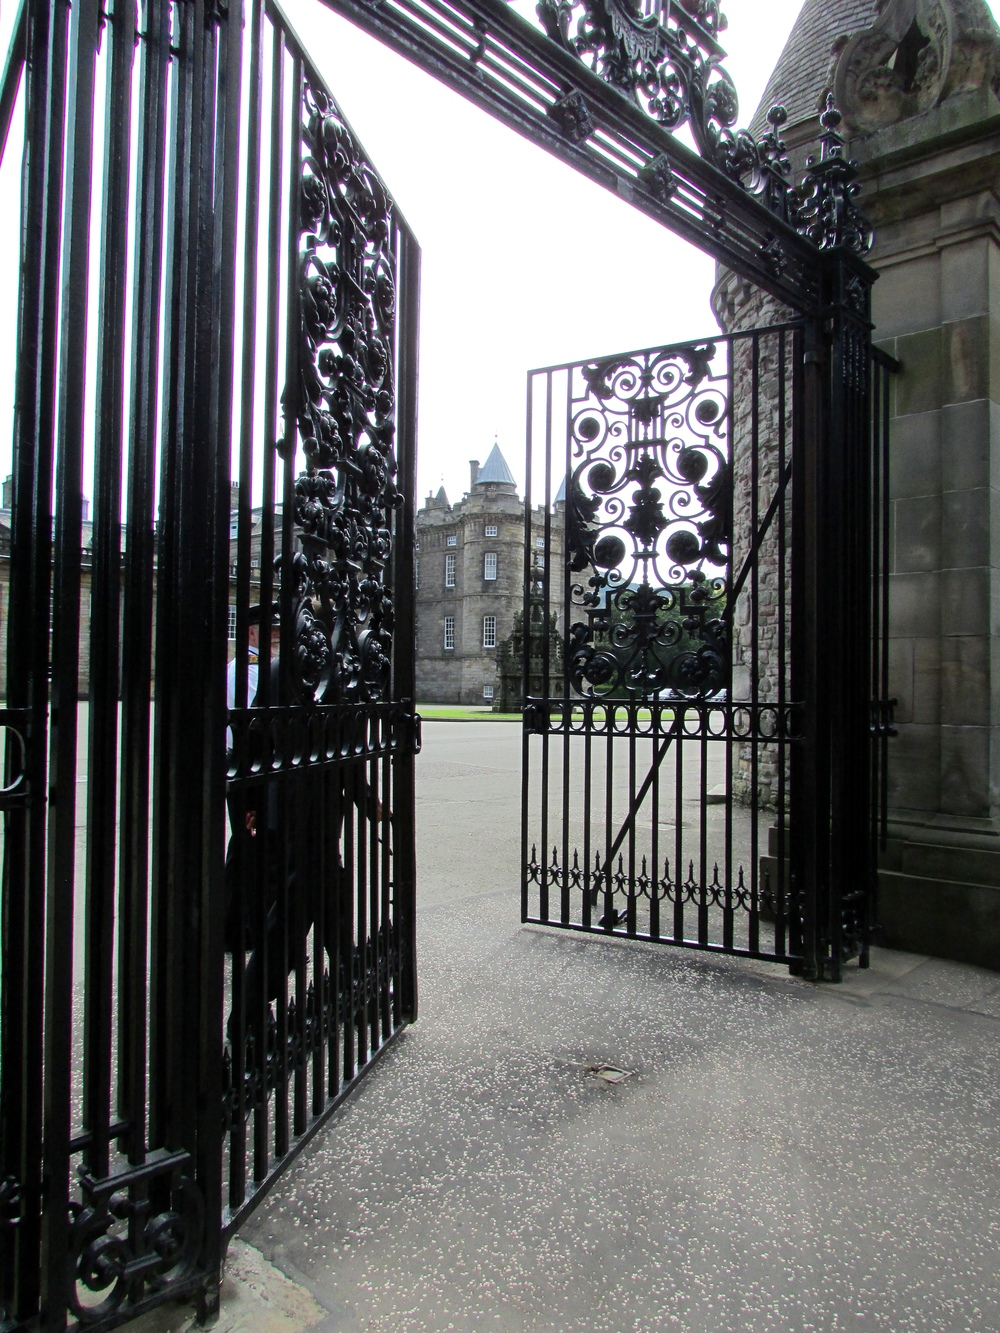 This is as close as I could get to the Palace of Holyroodhouse, as a member of the royal family was staying there for the week that I was in Edinburgh